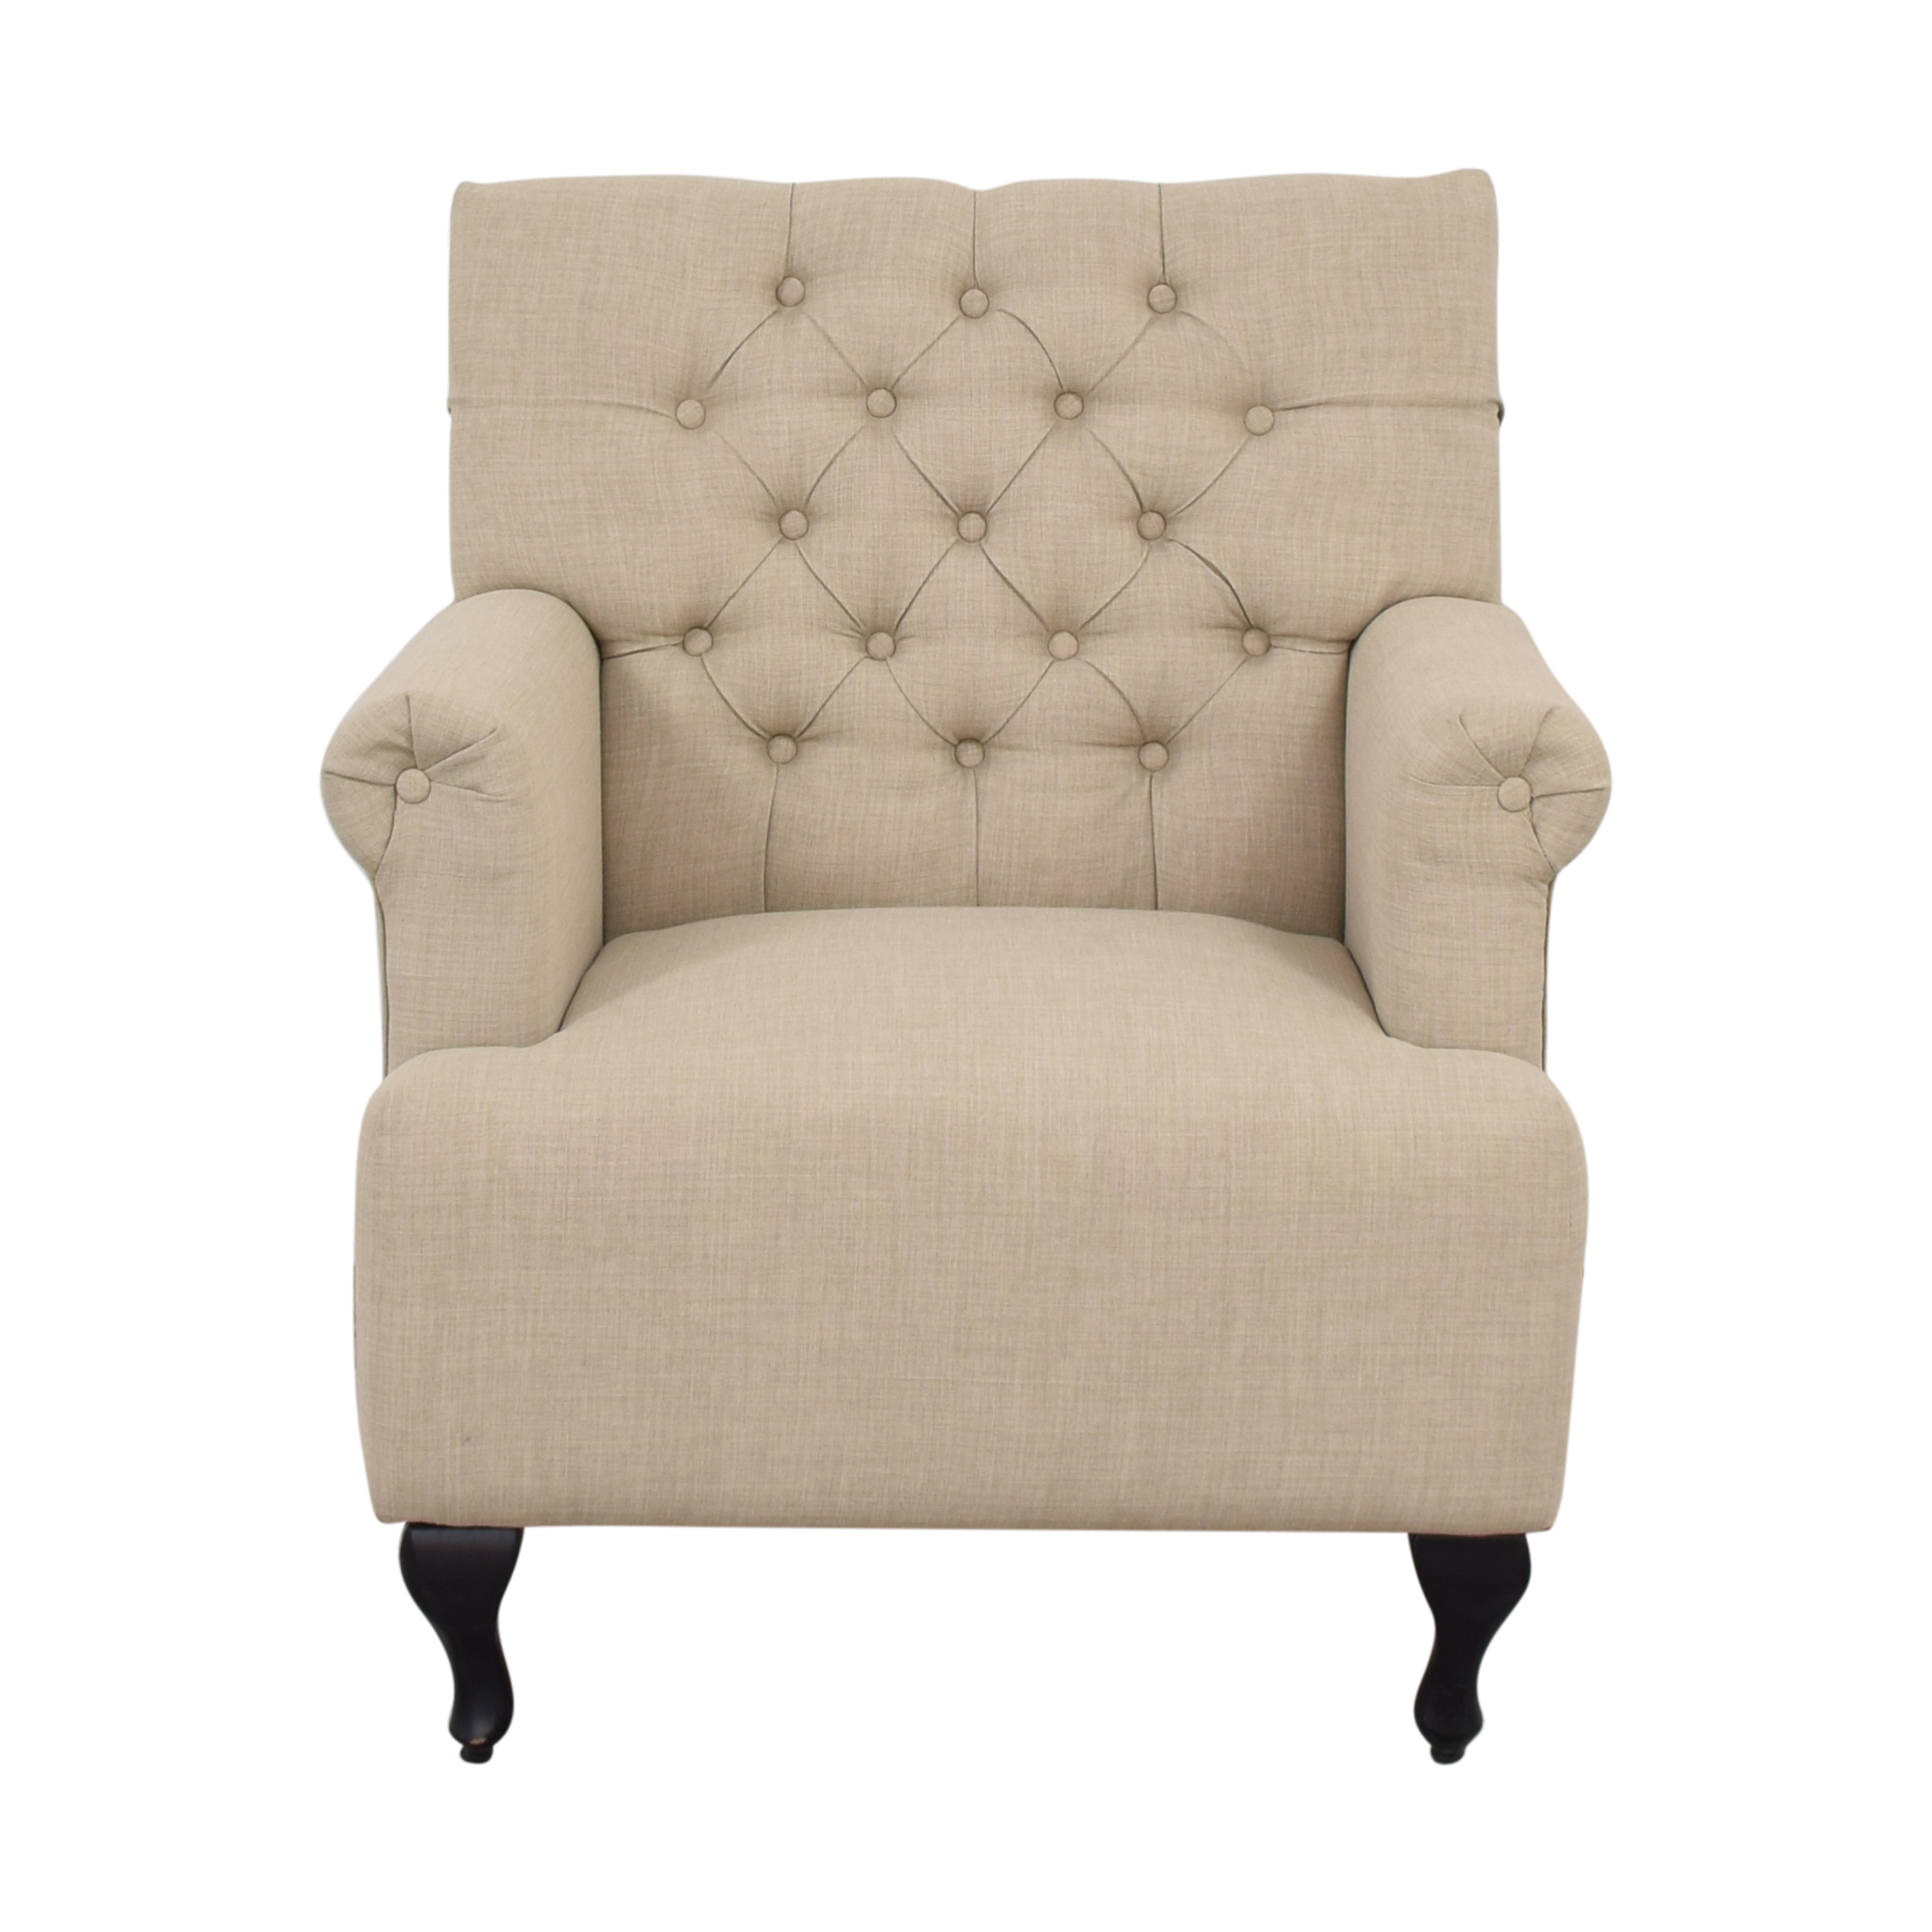 Charlton Home Charlton Home Viqueque Armchair ct